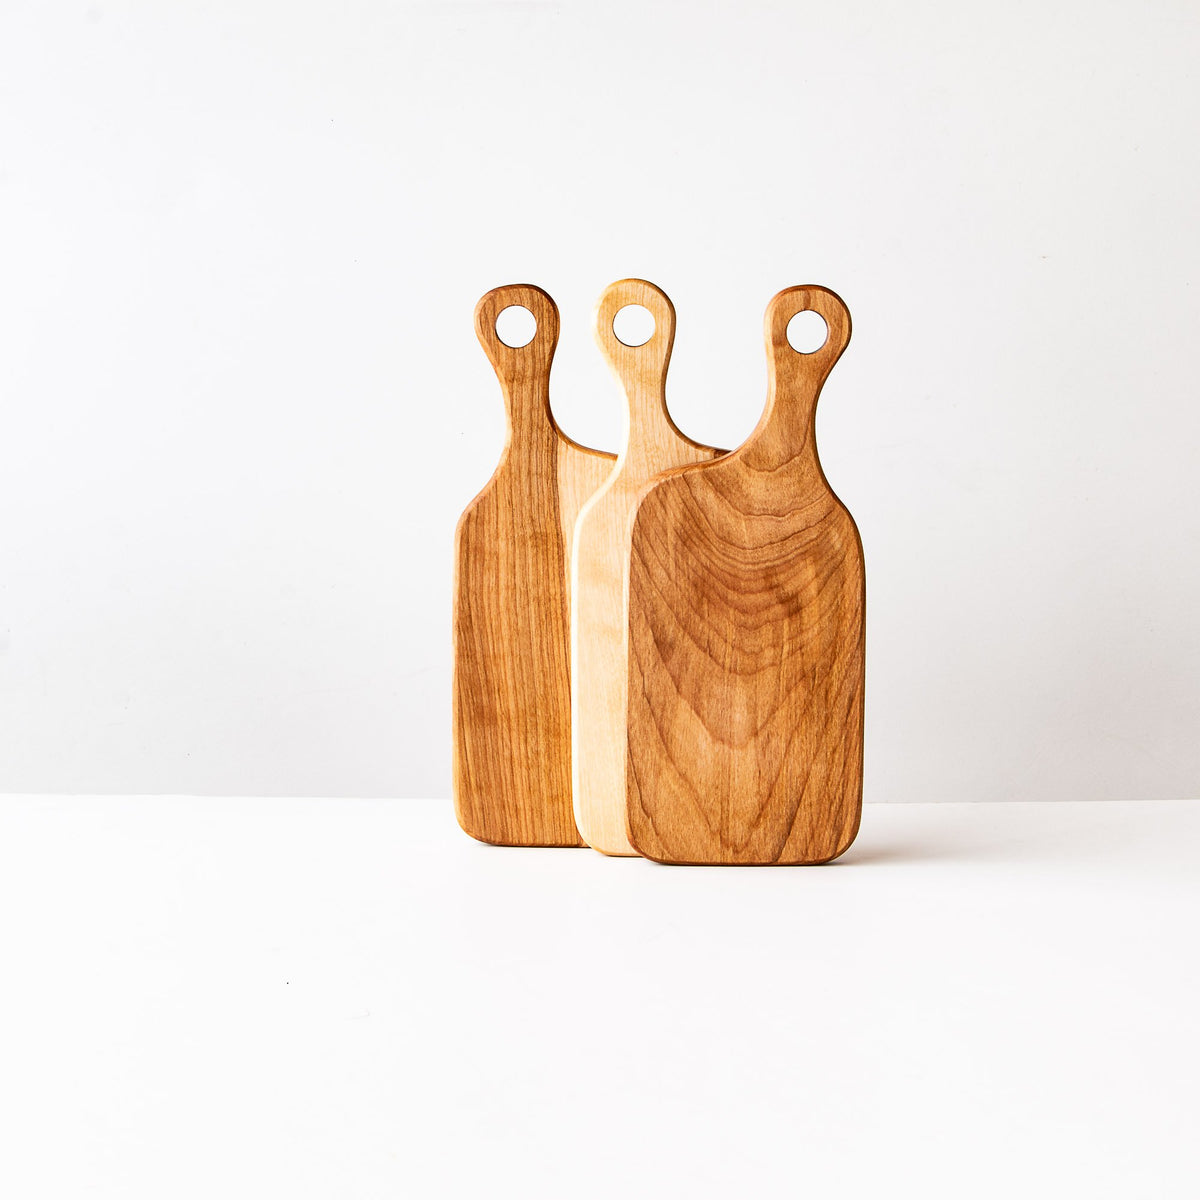 Muskoka N°1 - Three Handmade Cutting Boards in Birch - Sold by Chic & Basta